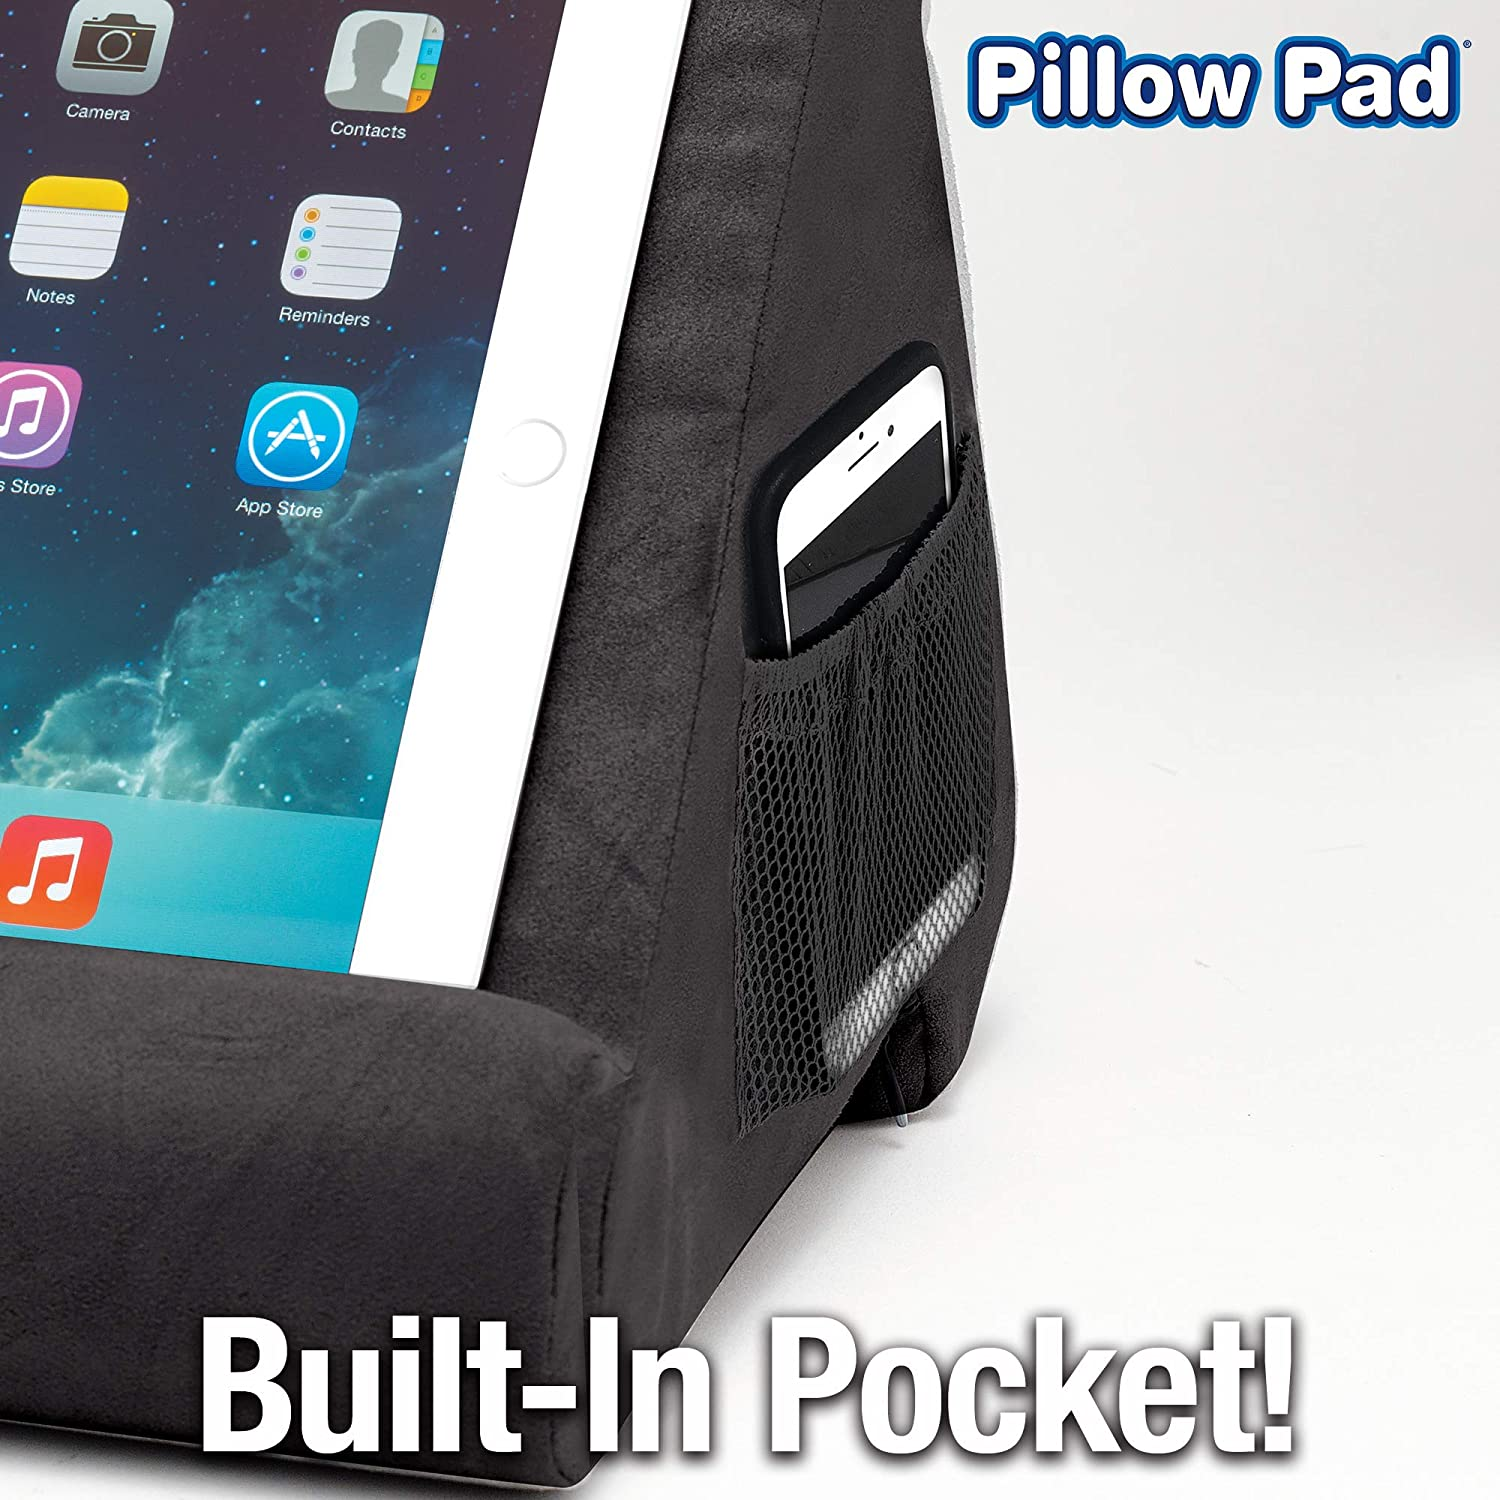 Black Friday Sale - Pillow Pad Multi-Angle Soft Tablet Stand - Burgundy